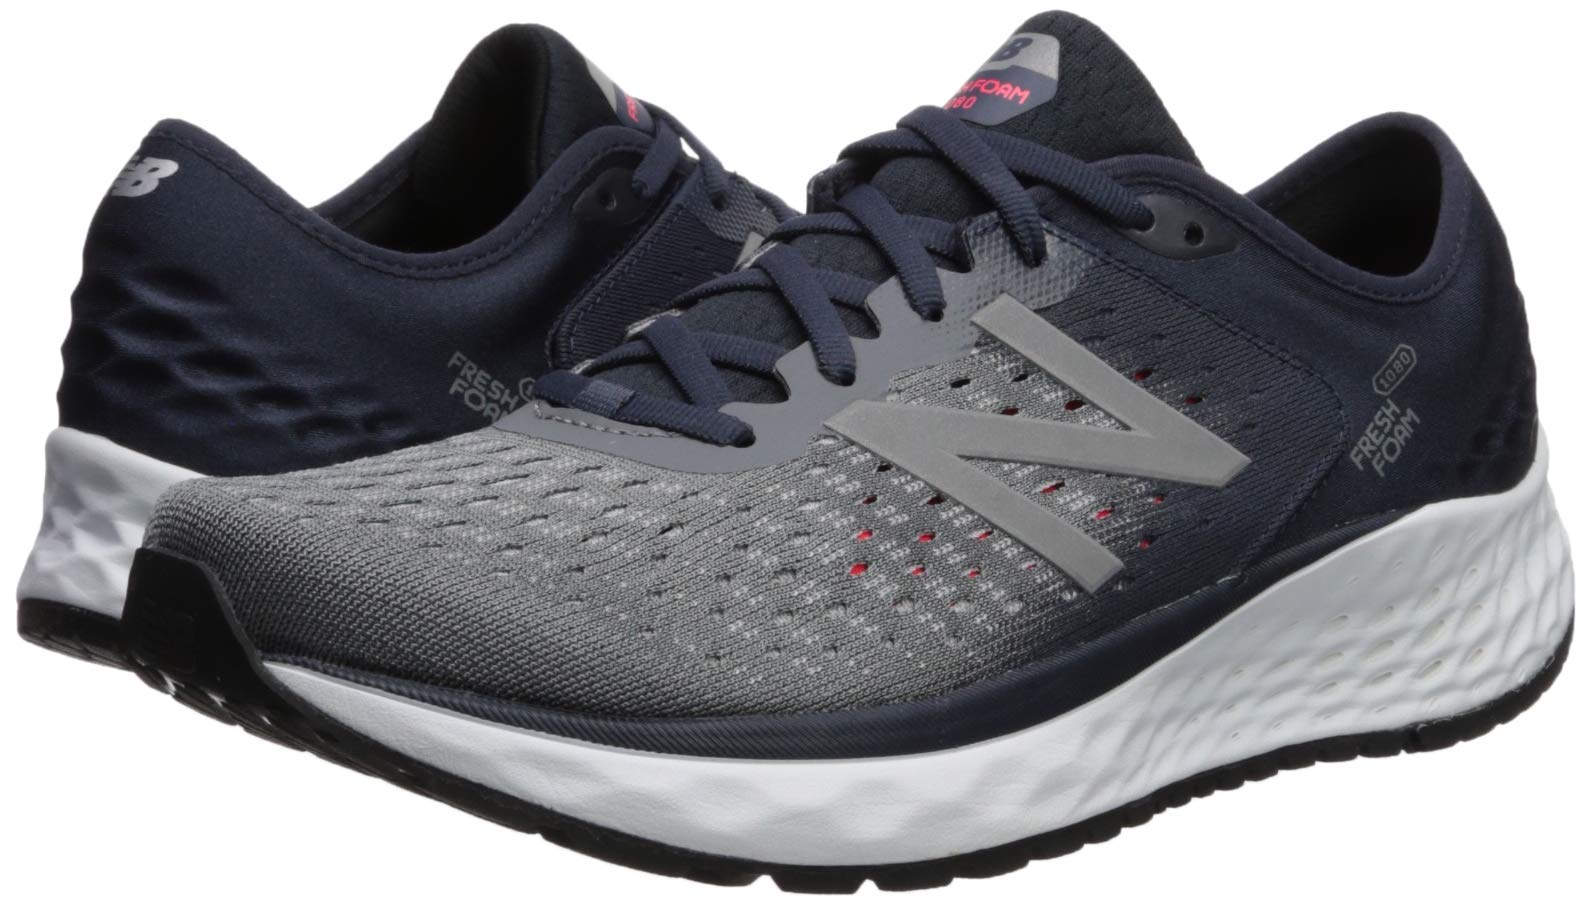 New Balance Men's 1080v9 Fresh Foam Running Shoe, Gunmetal/Outerspace/Energy red, 7 D US by New Balance (Image #6)